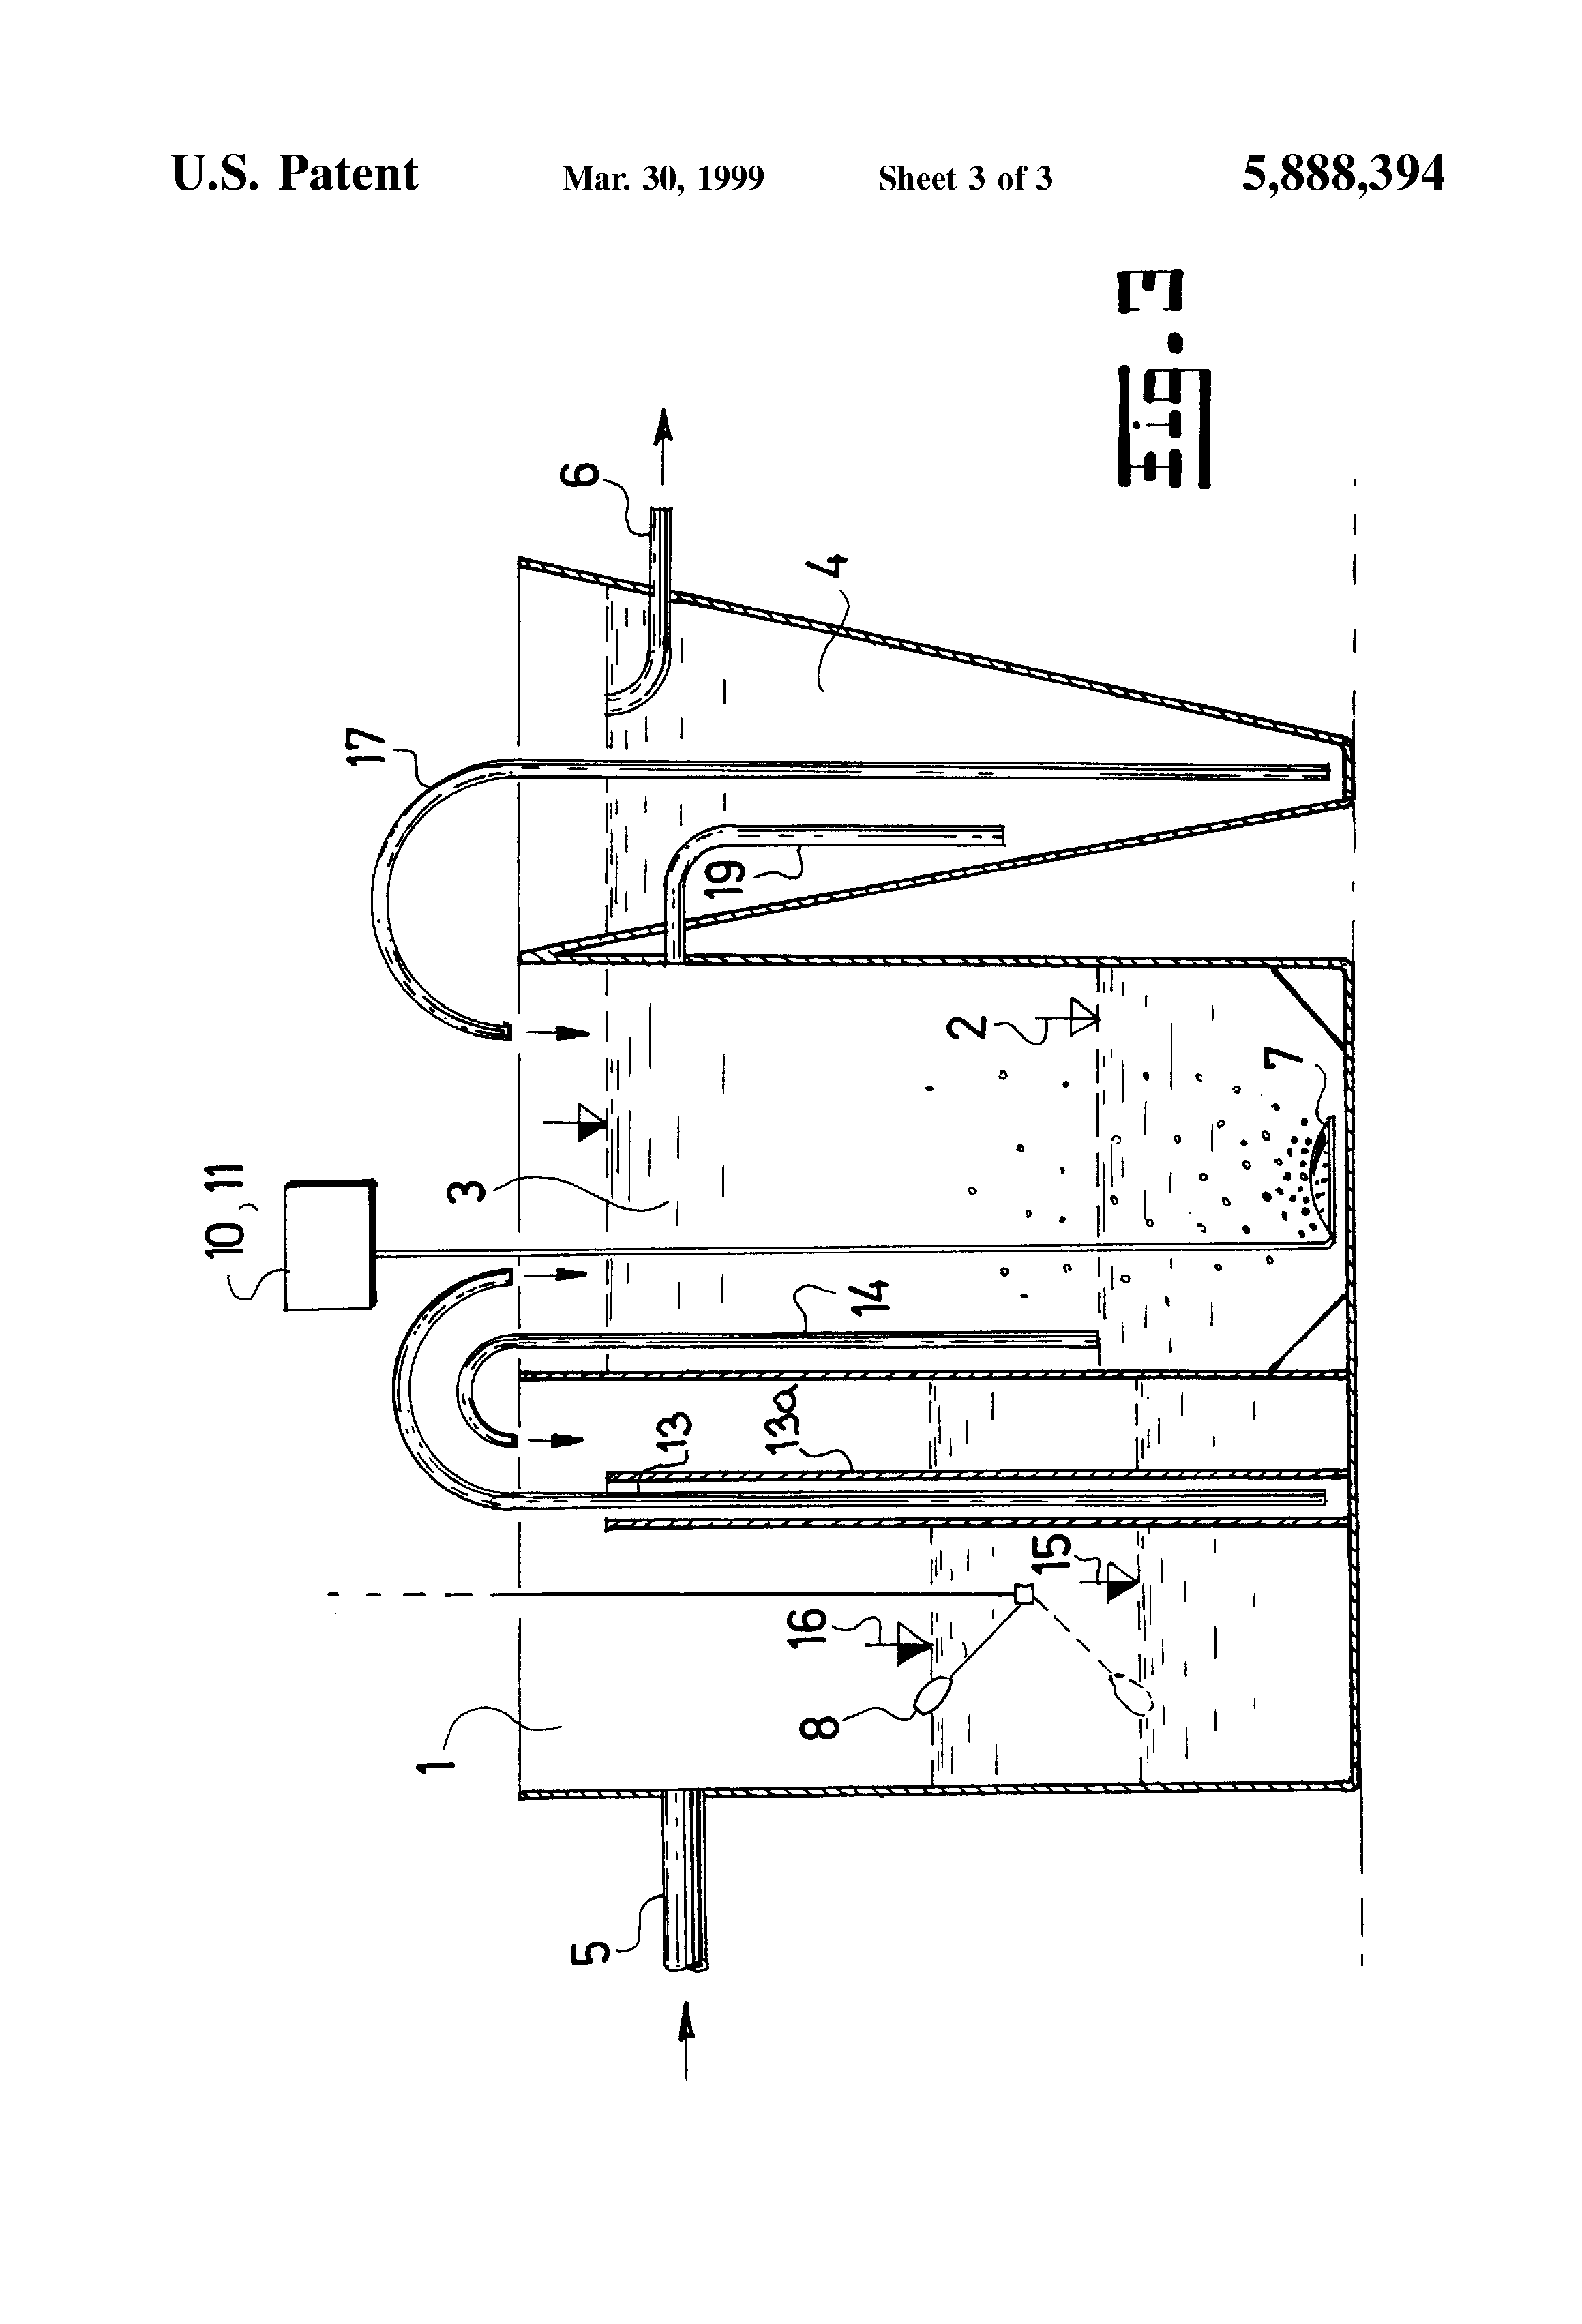 Patent Us5888394 Method And Apparatus For Sewage Water Treatment S Sbr Process Flow Diagram Drawing